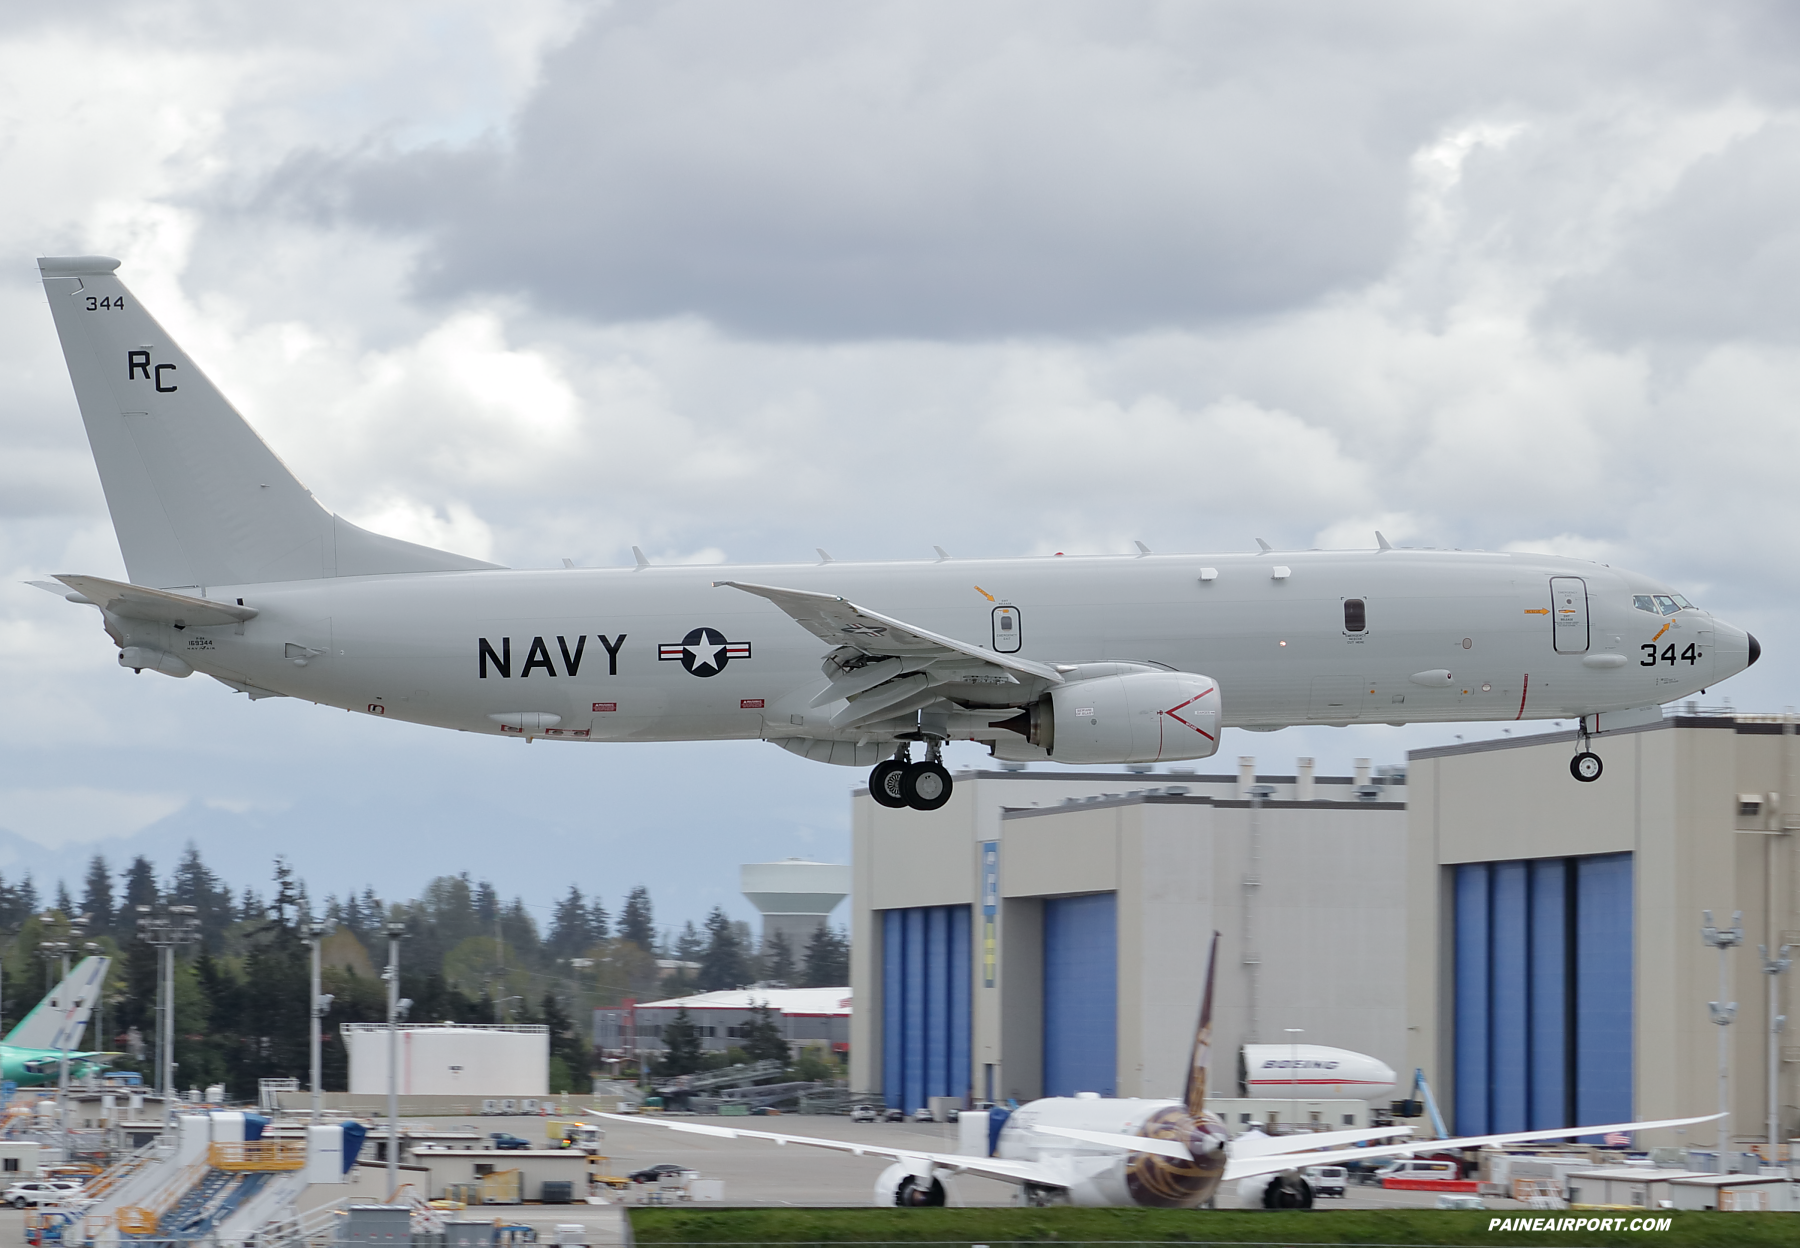 P-8A 169344 at Paine Field